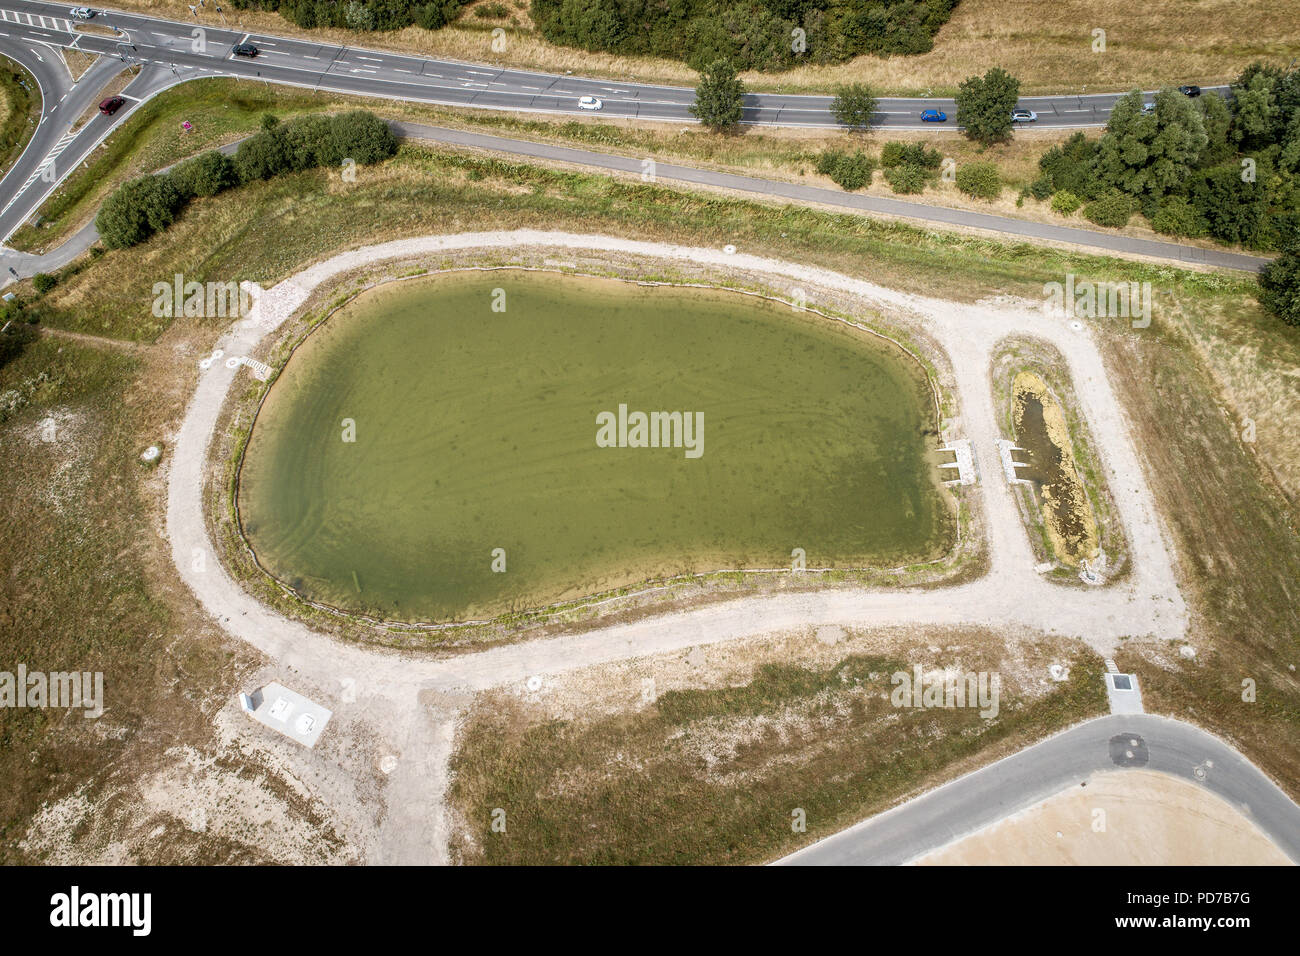 Aerial view of a rain retention basin at the edge of a new development, taken oblique - Stock Image